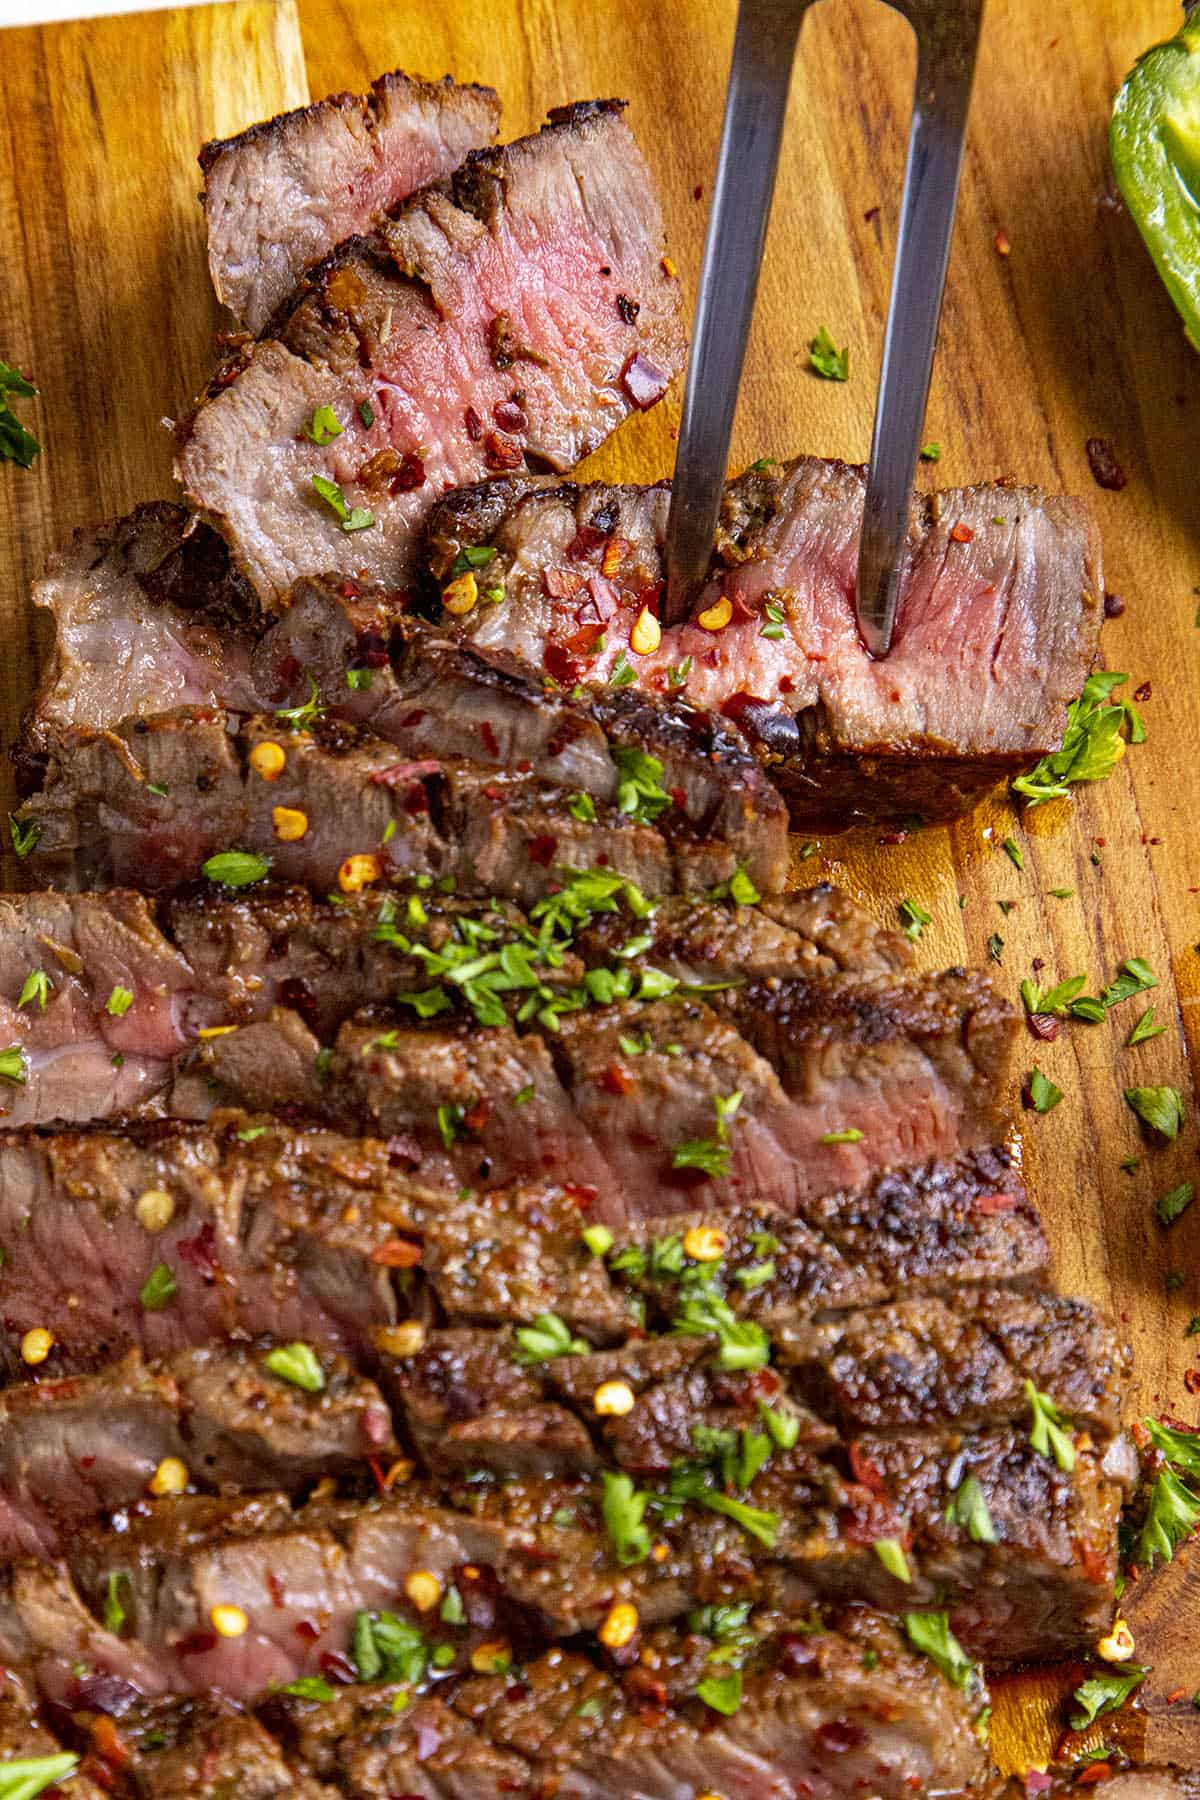 A juicy cut of sliced London broil